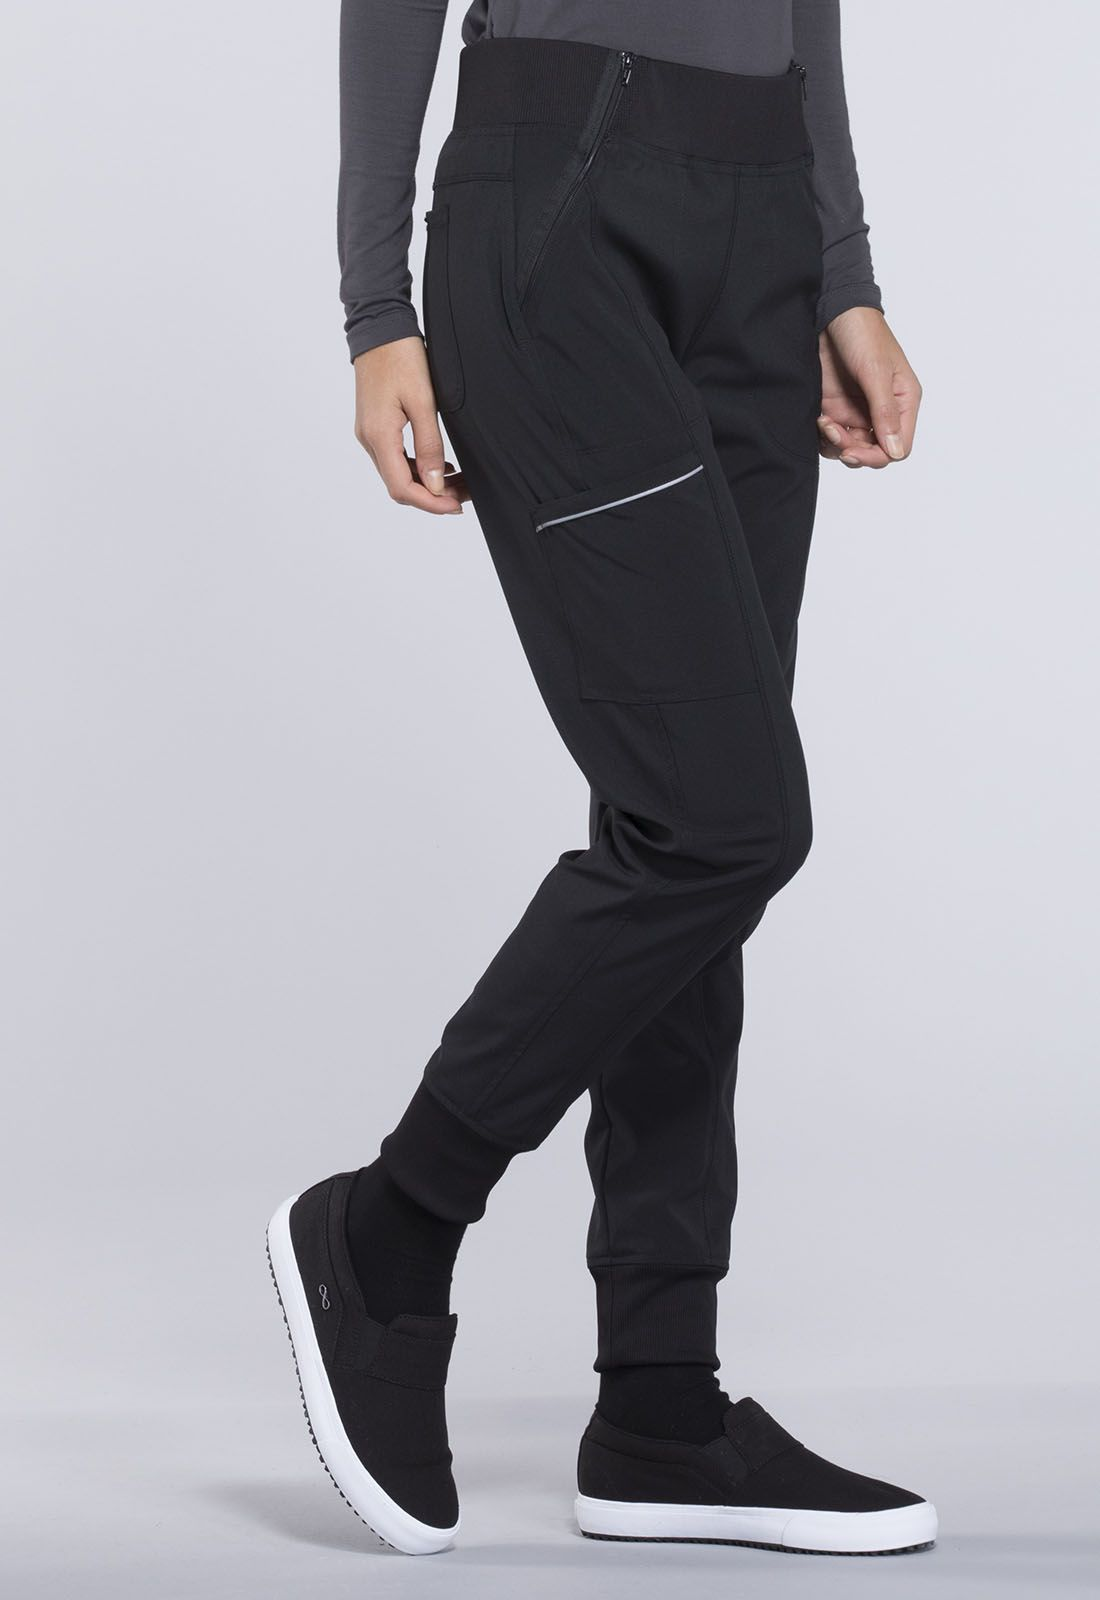 https://medcloth.by/images/stories/virtuemart/product/ck110-black-3.jpg